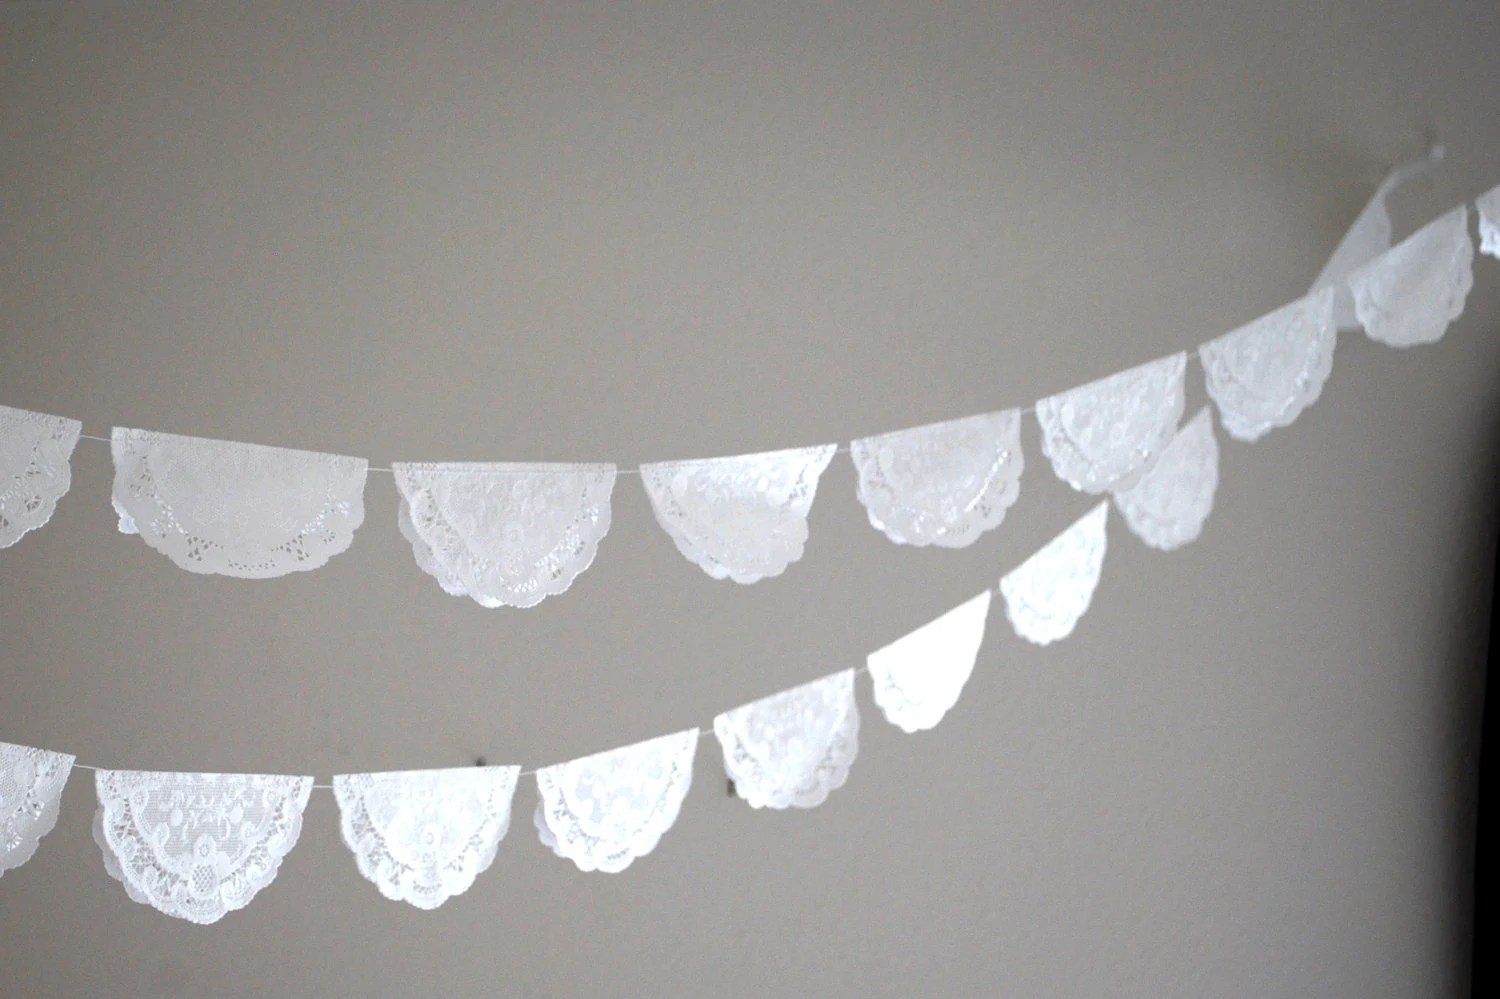 Paper Lace Garland - 10'